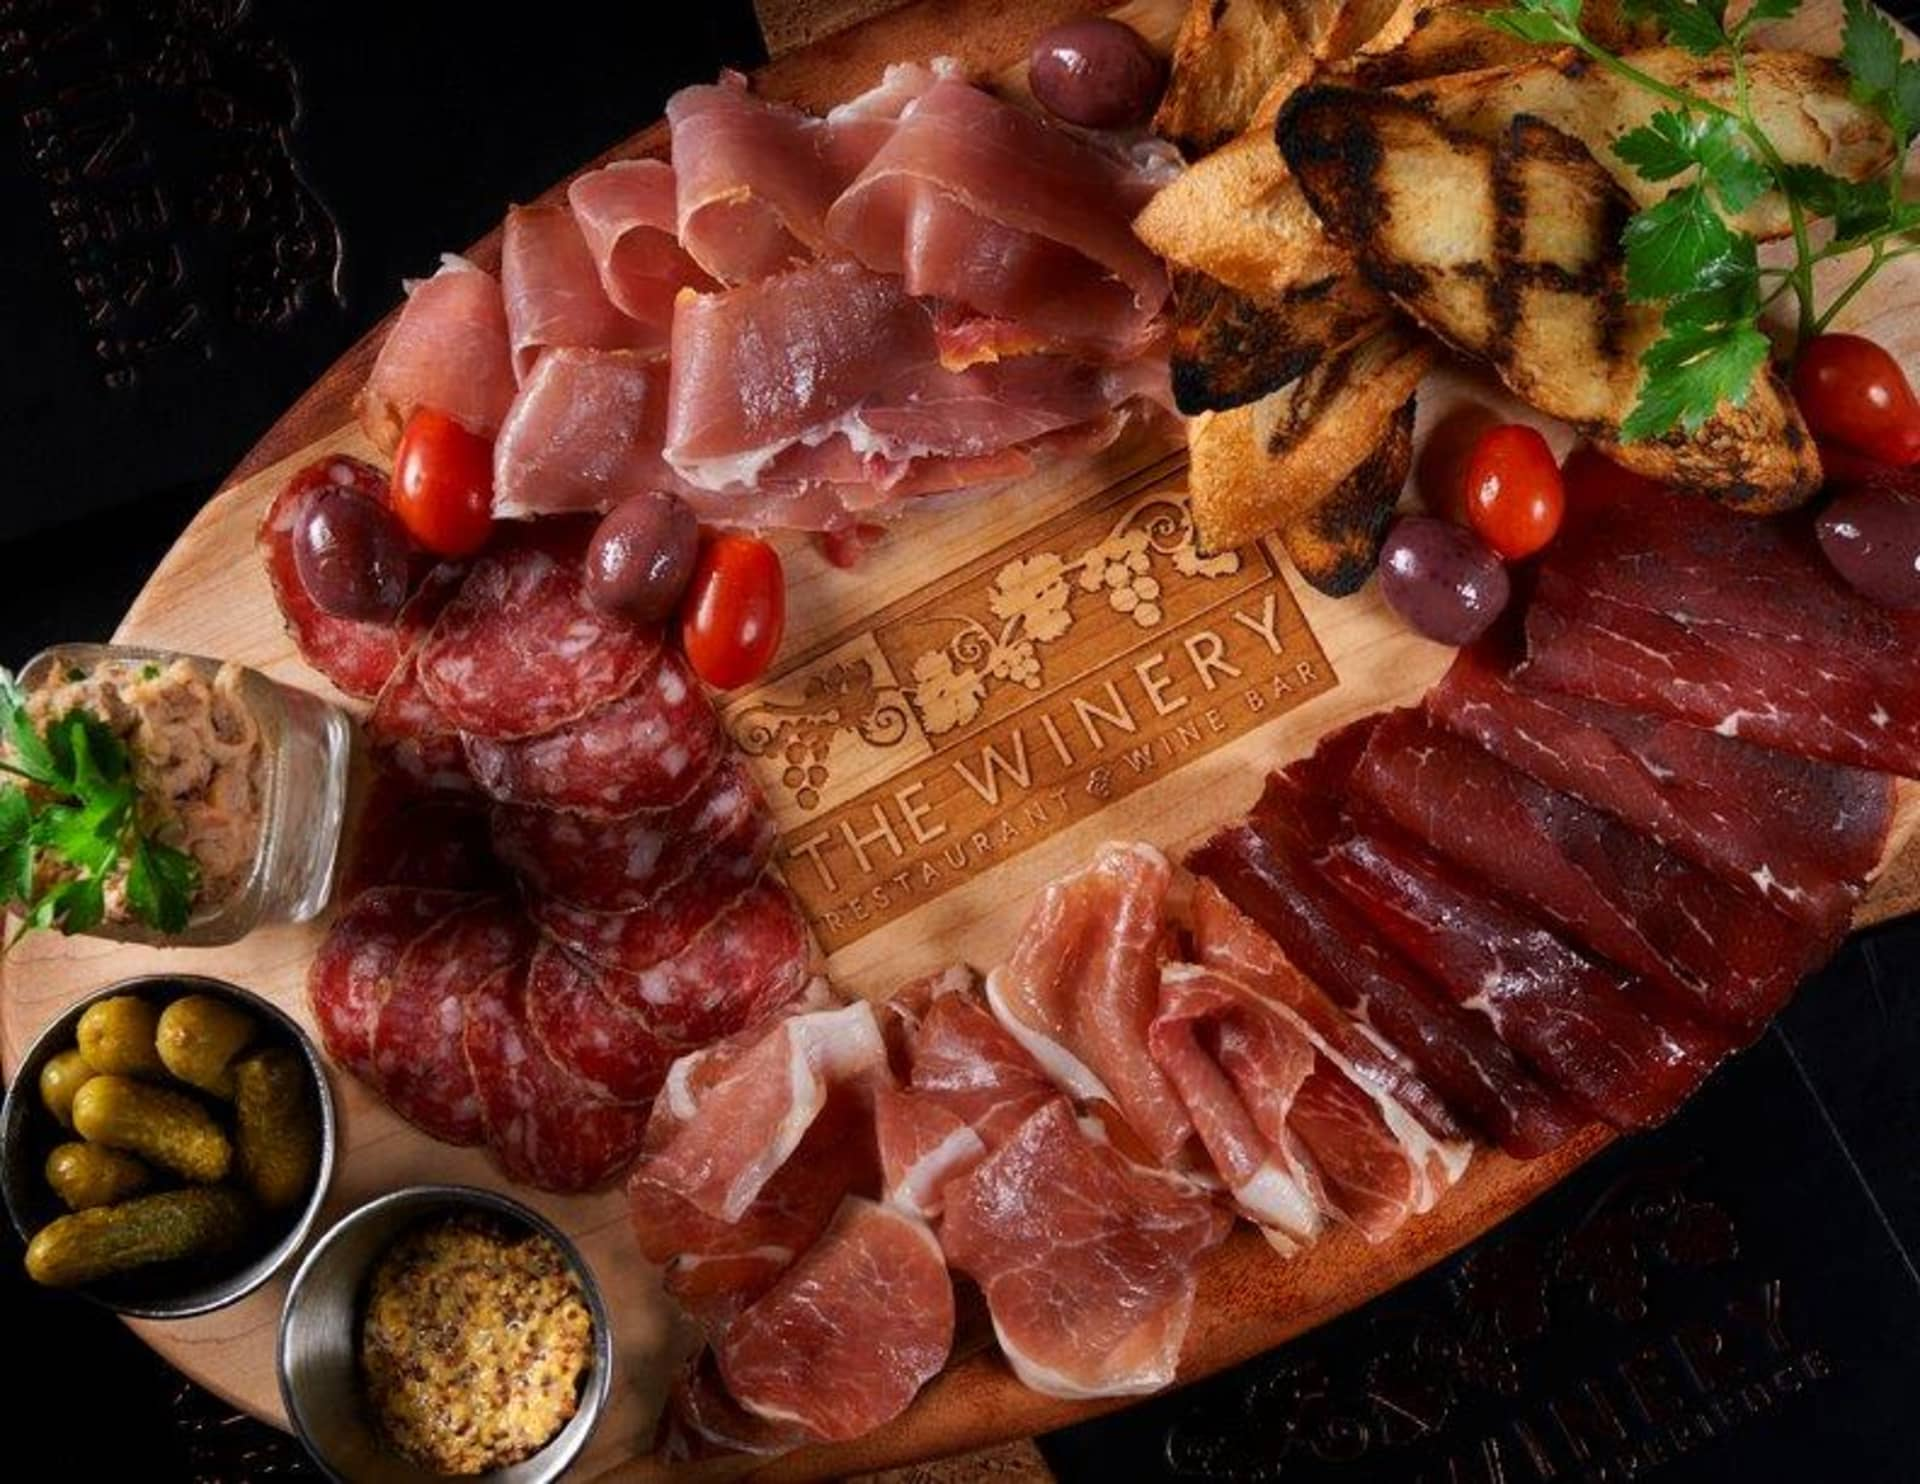 Charcuterie & Artisanal Cheese Board